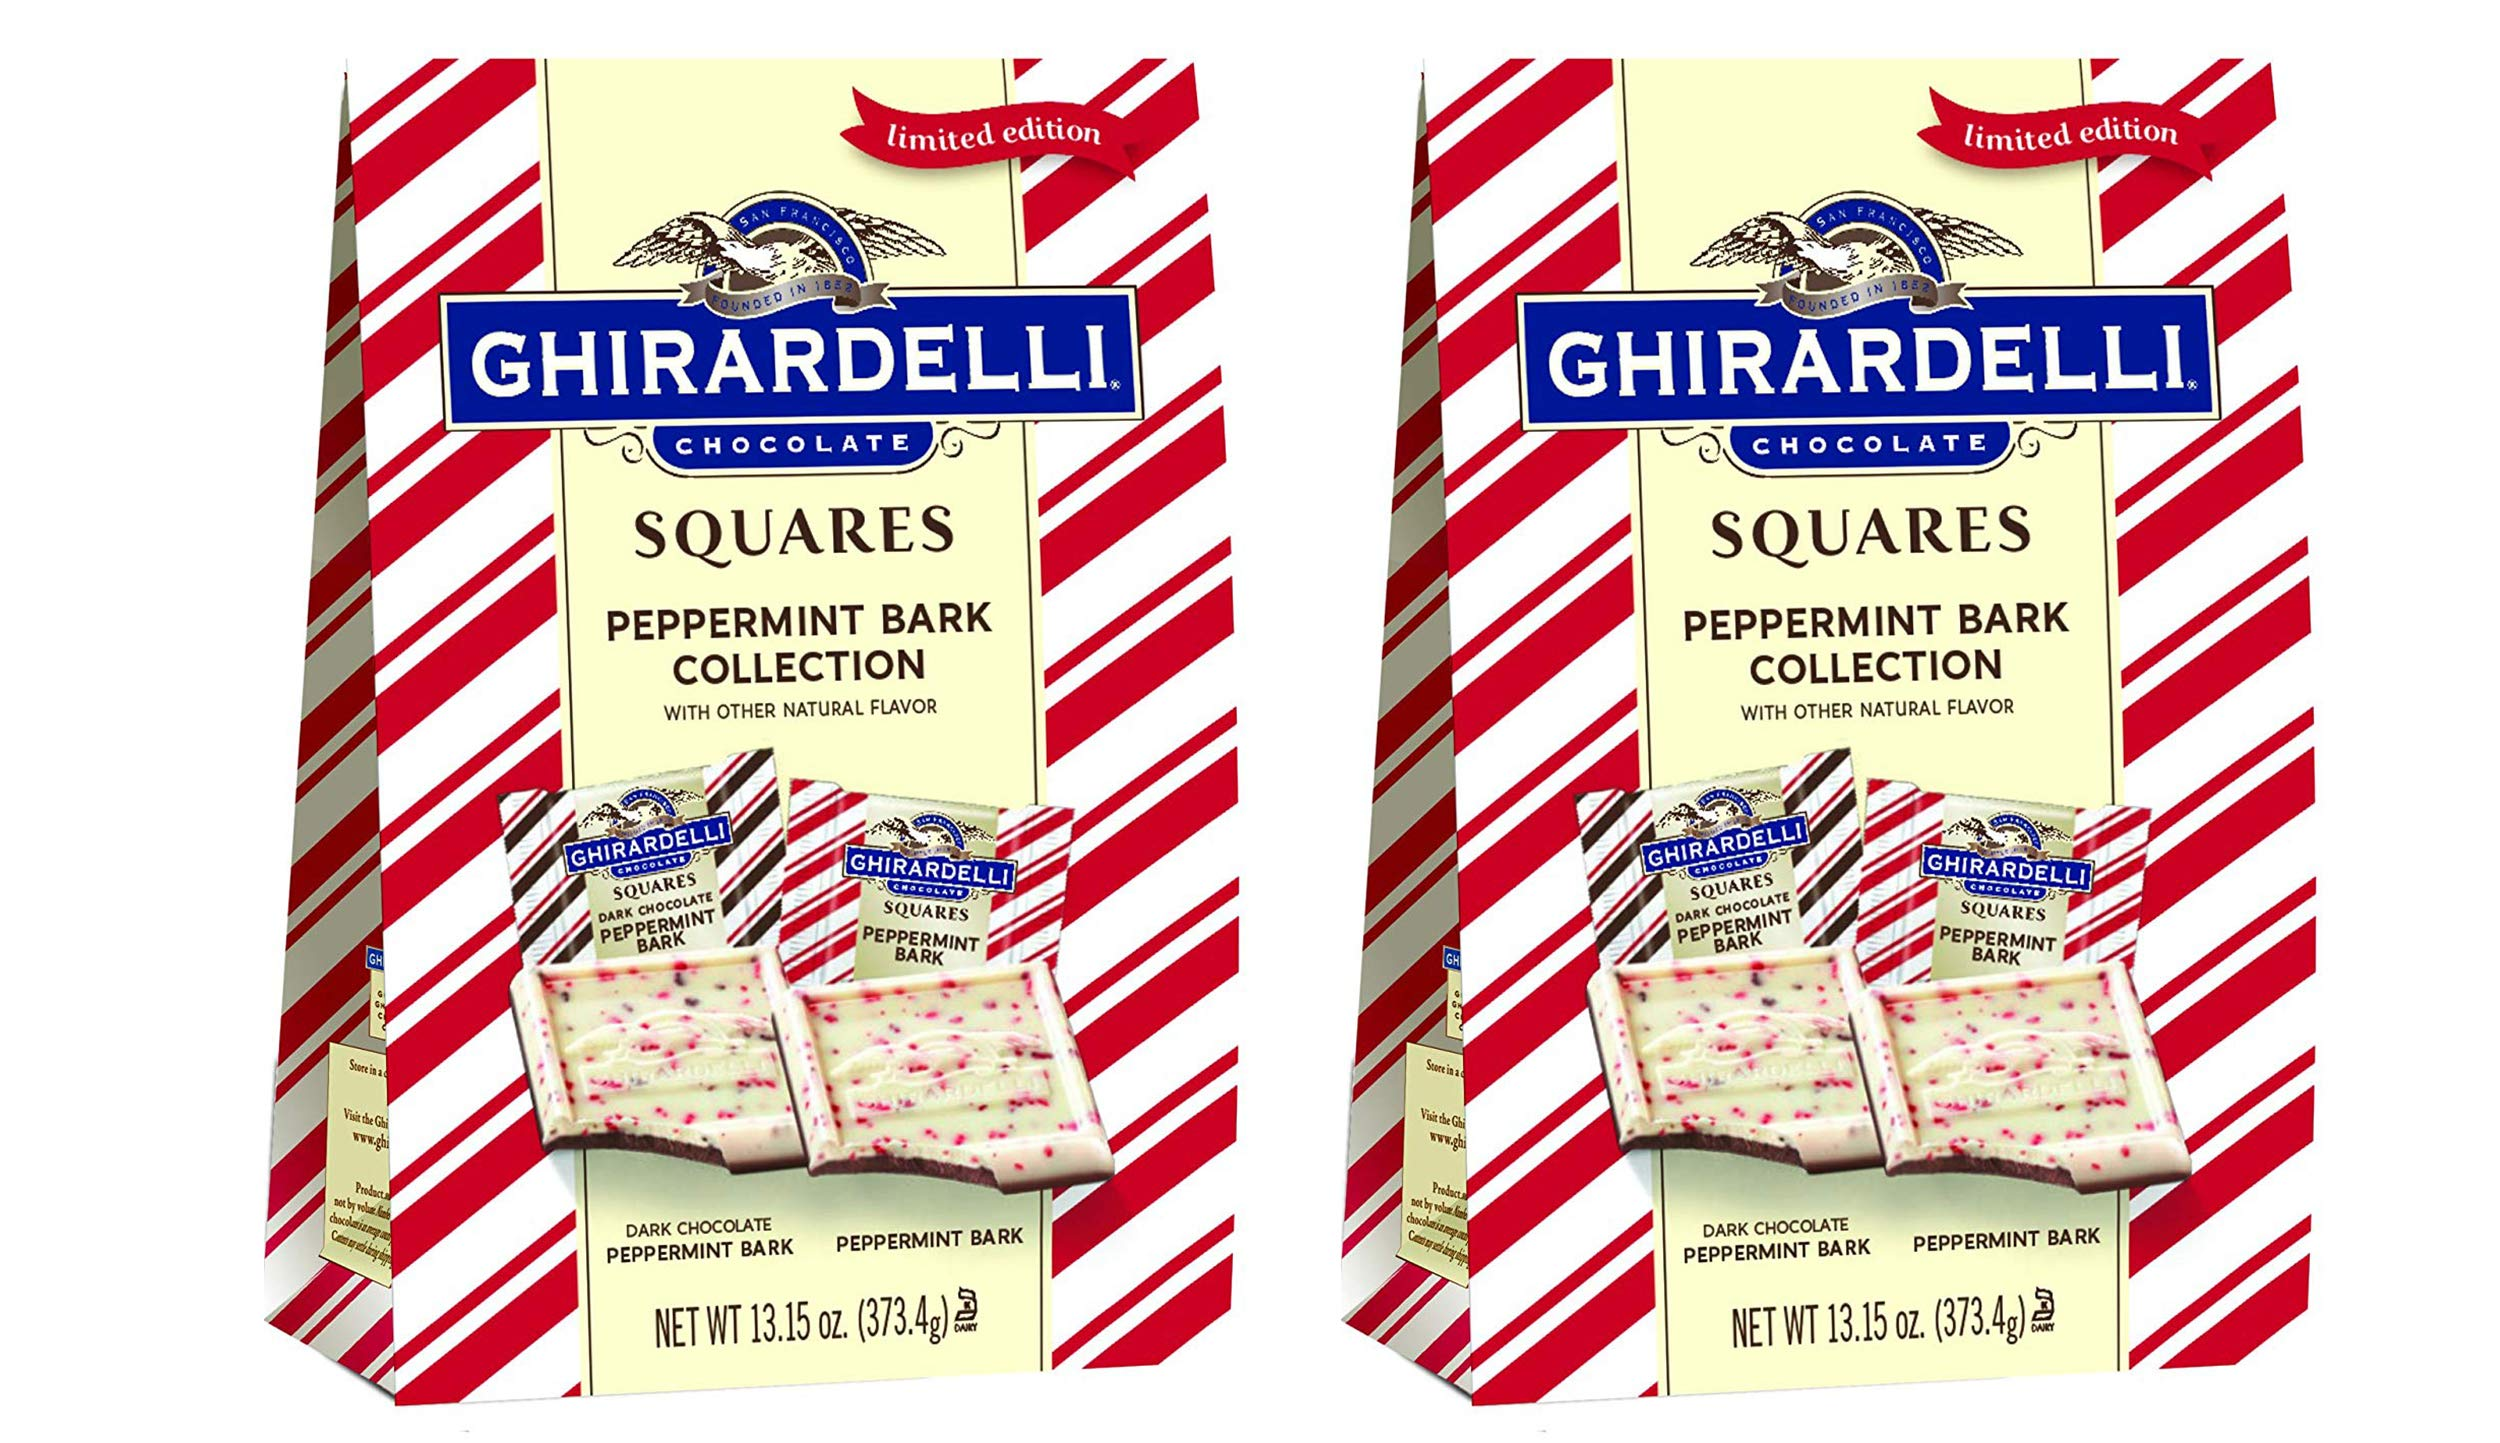 Ghirardelli Limited Edition Peppermint Bark Squares (2-Pack) by Ghirardelli